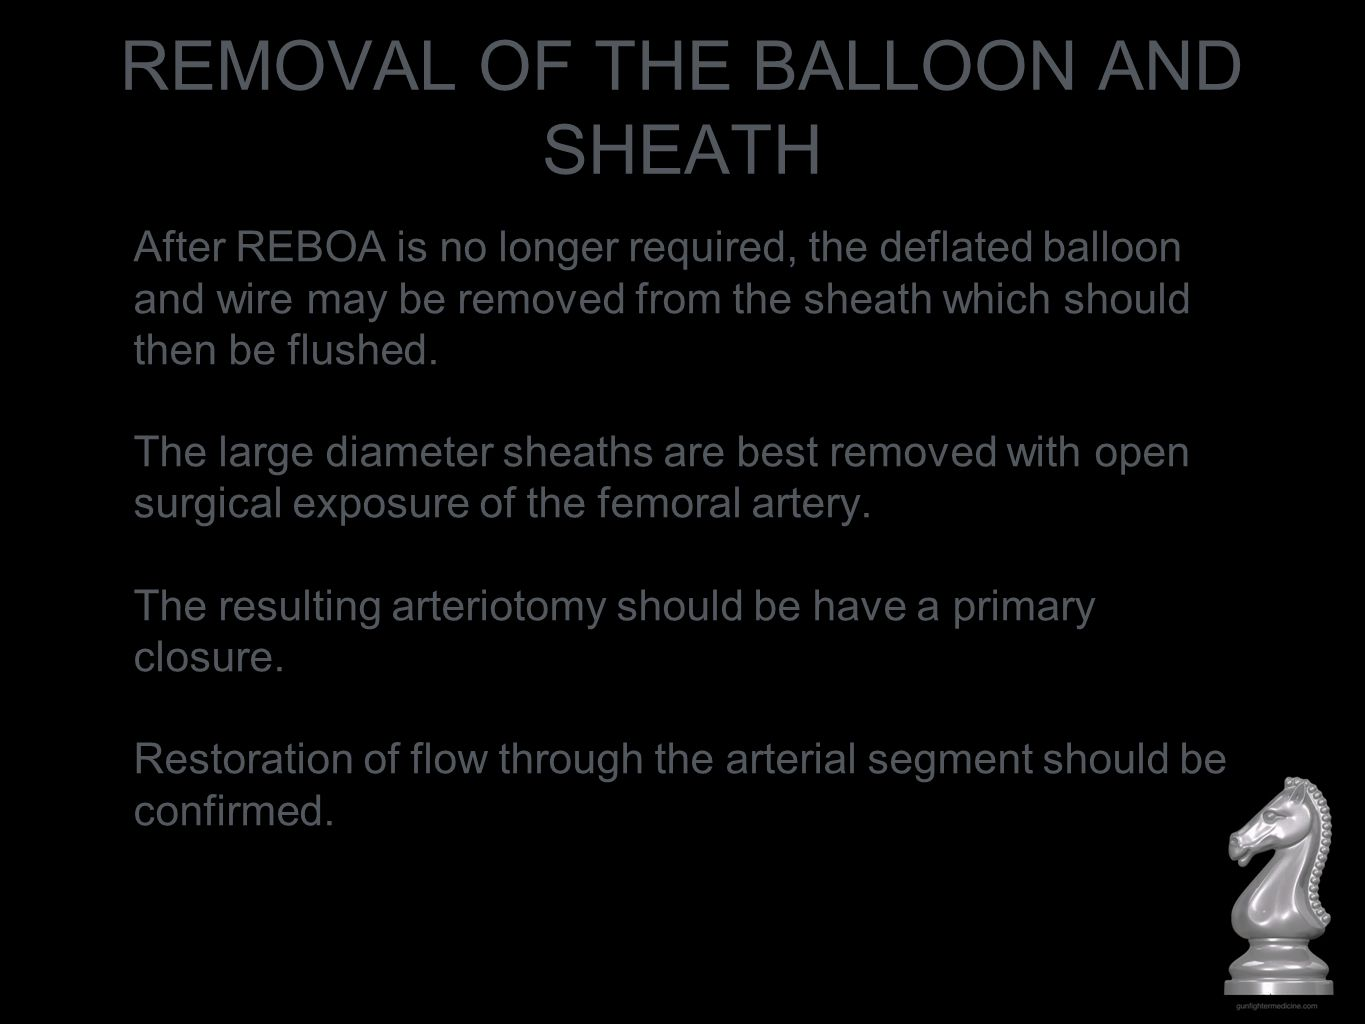 REMOVAL OF THE BALLOON AND SHEATH